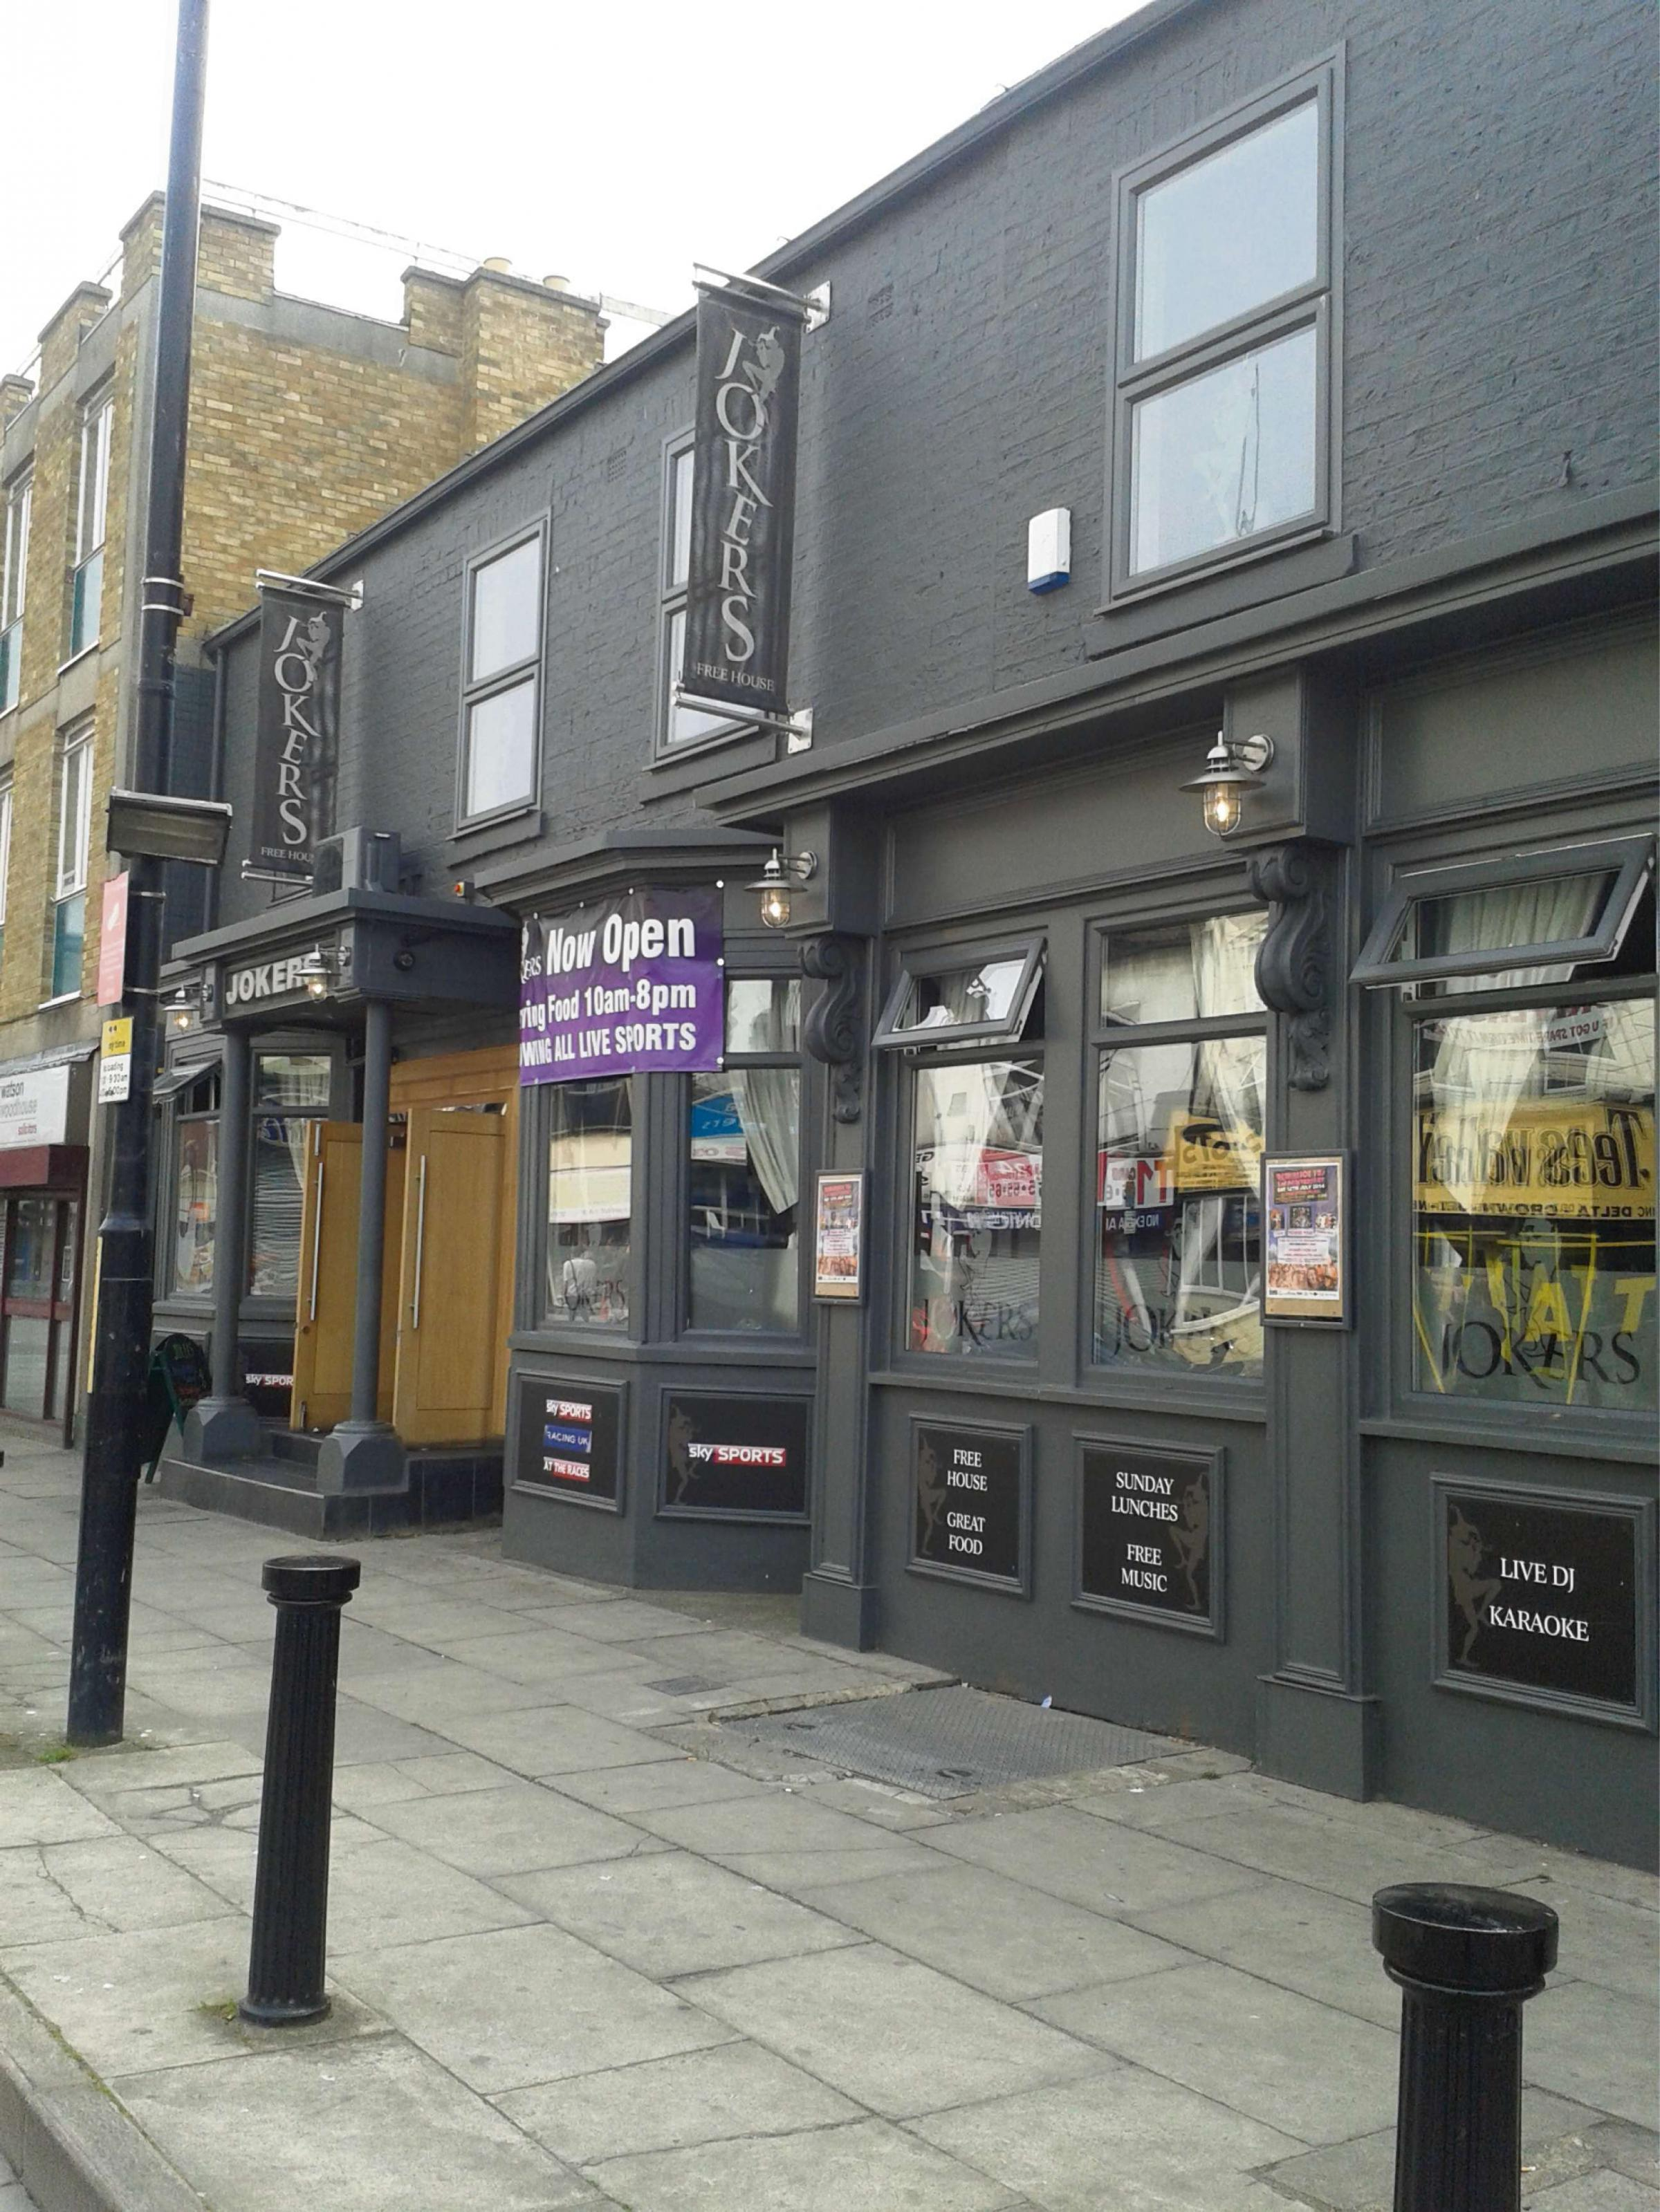 Extended opening times for Stockton's Jokers pub